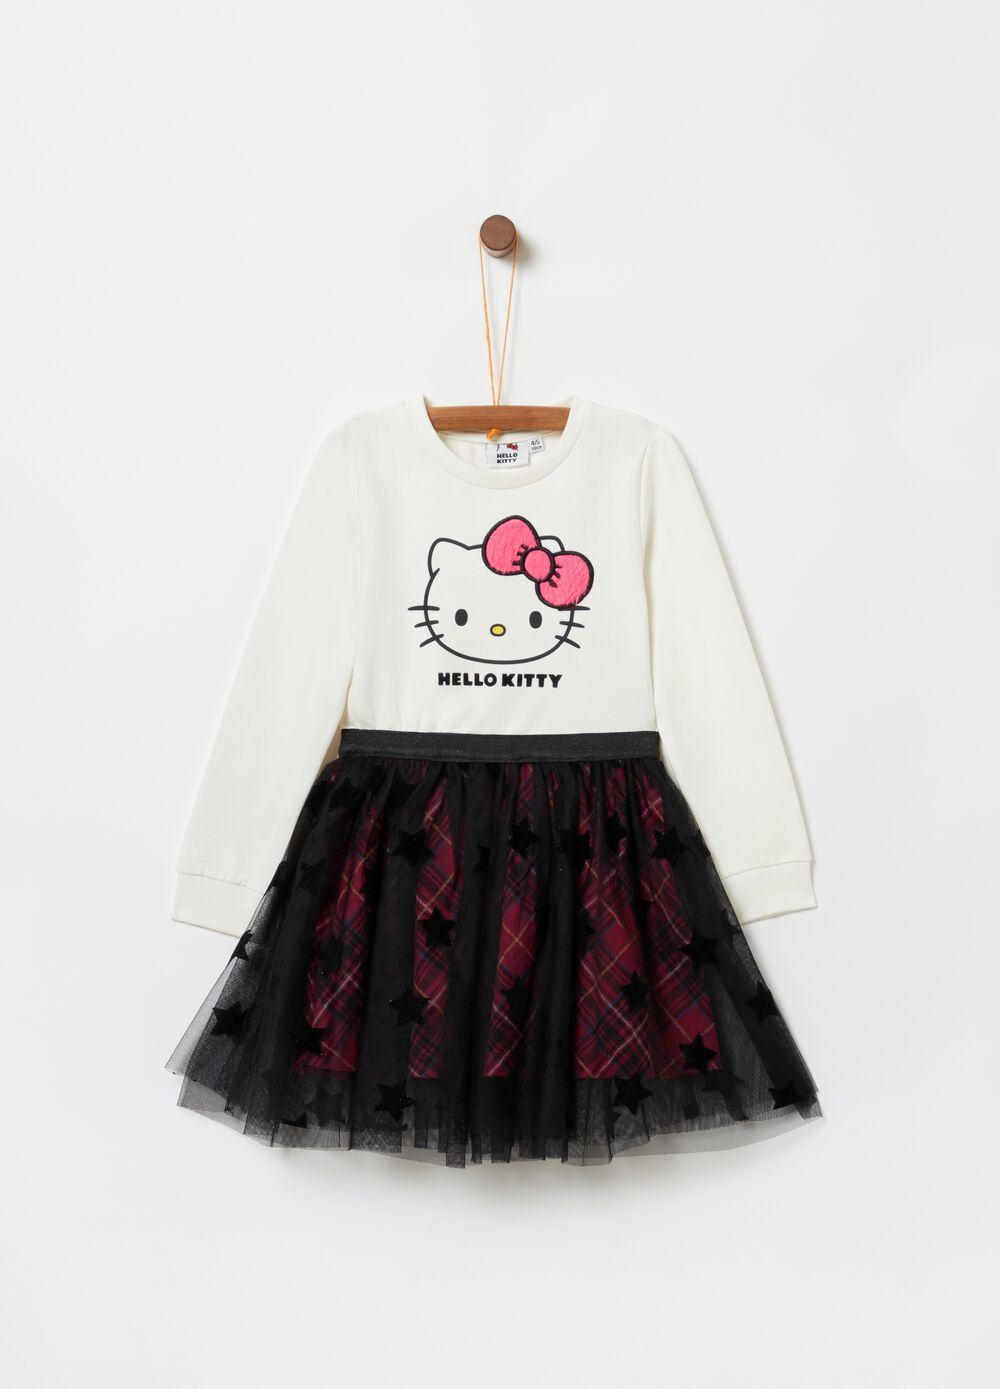 Dress with Hello Kitty print and tulle